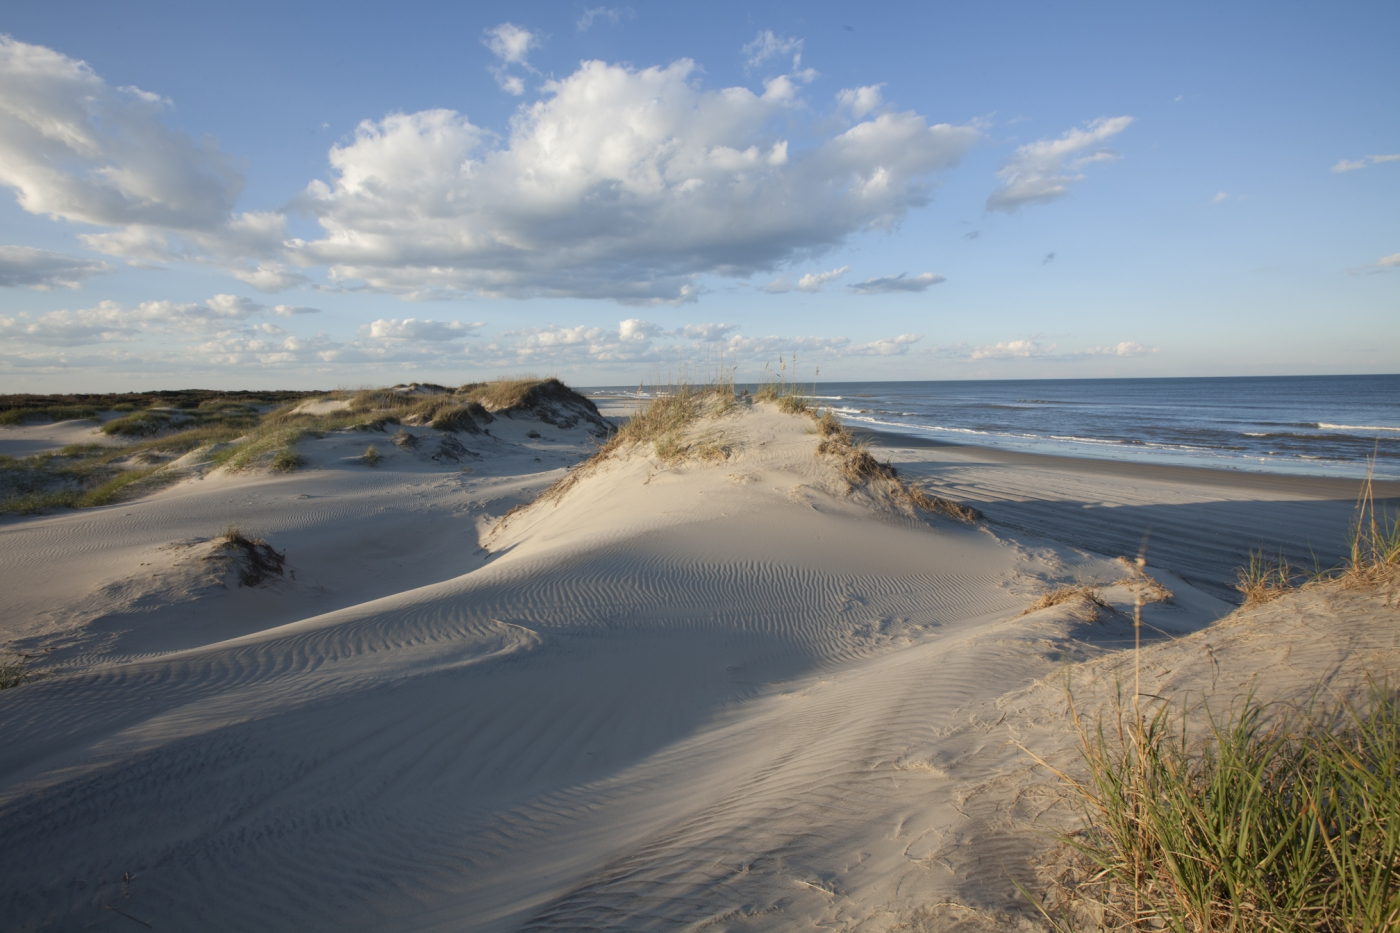 North Carolina's 300 miles of barrier island beaches beckon visitors near and far.